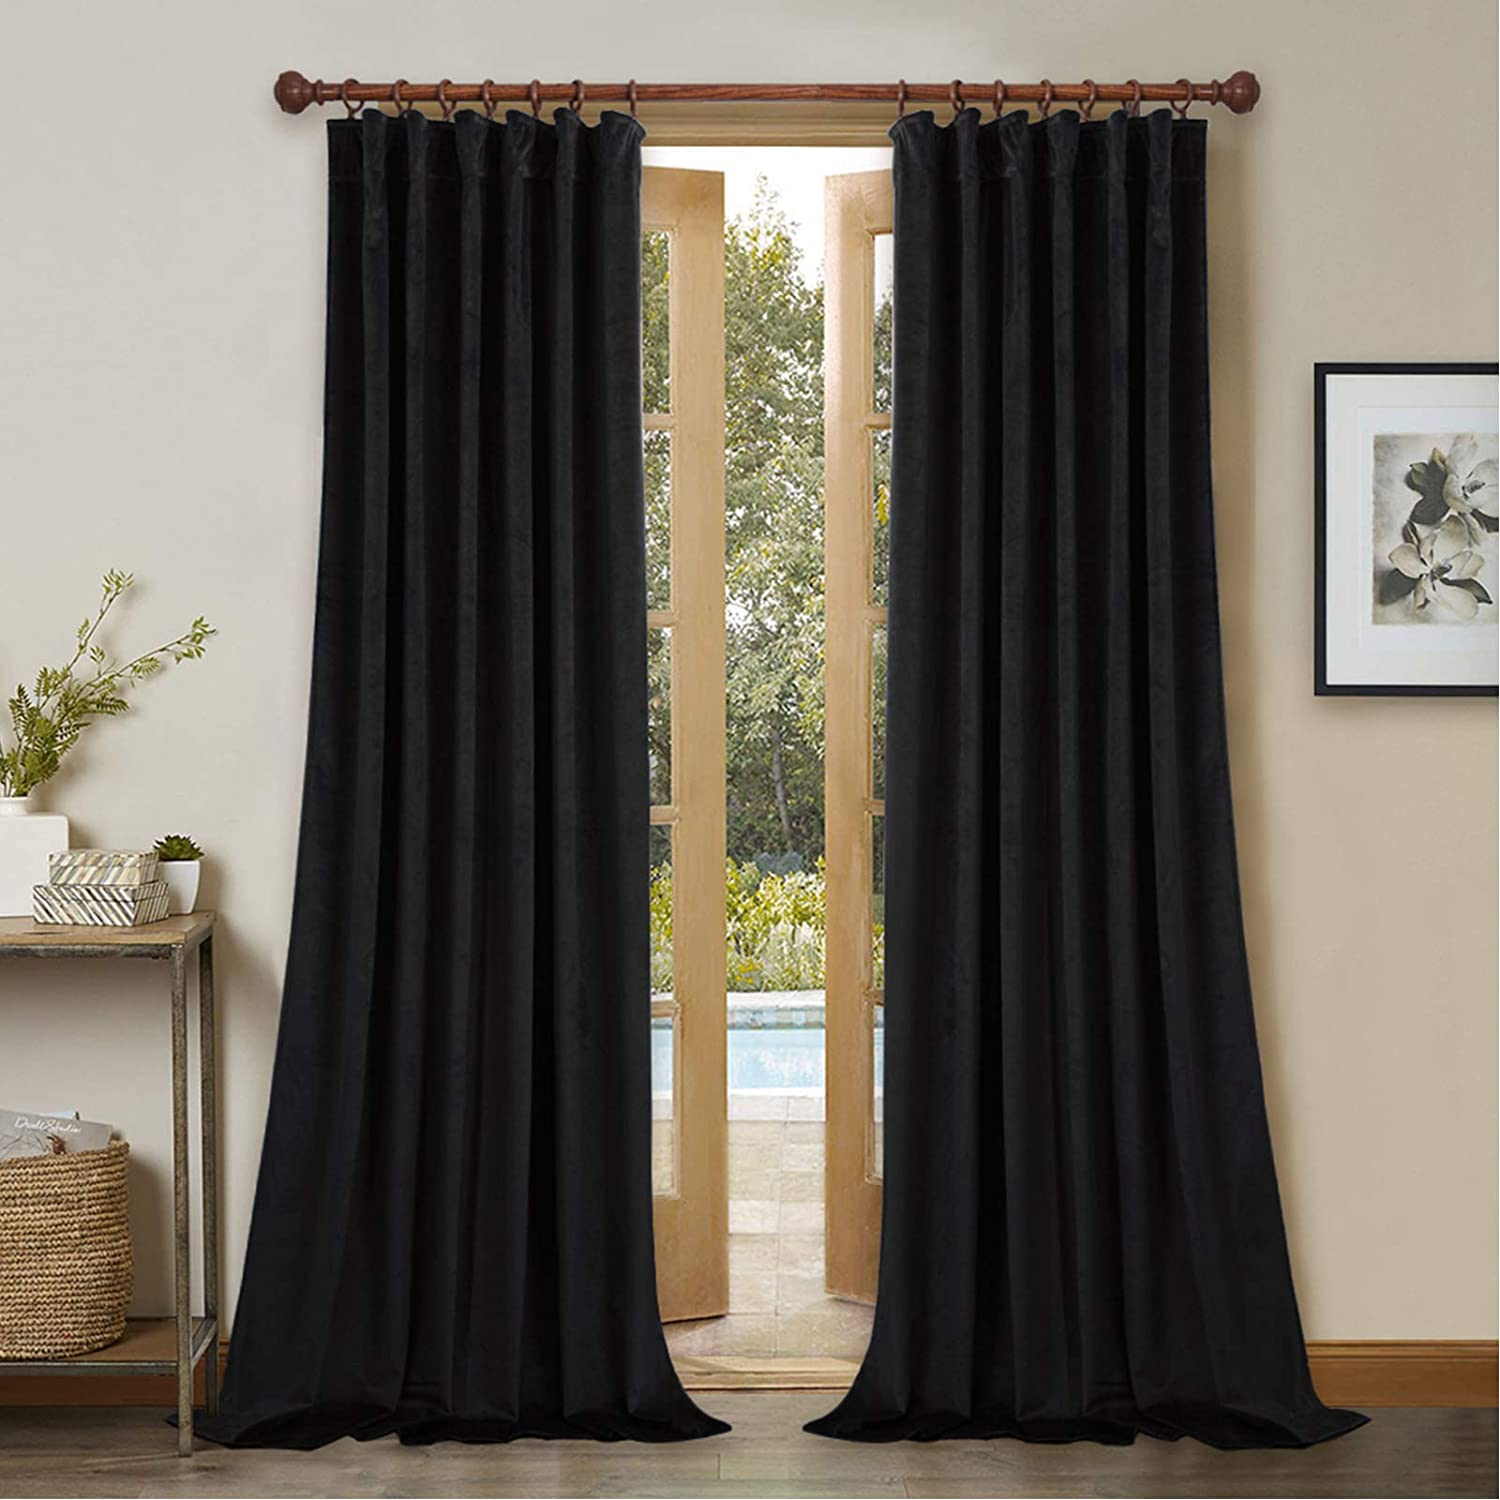 Buy Patio Door Blackout Velvet Curtains - 96 Inches Long Thermal Insulated Black  Velvet Drapes Noise Buffer Privacy Assured Curtain Panels for Night  Shifter, 52 x 96 Each Panel, Set of 2